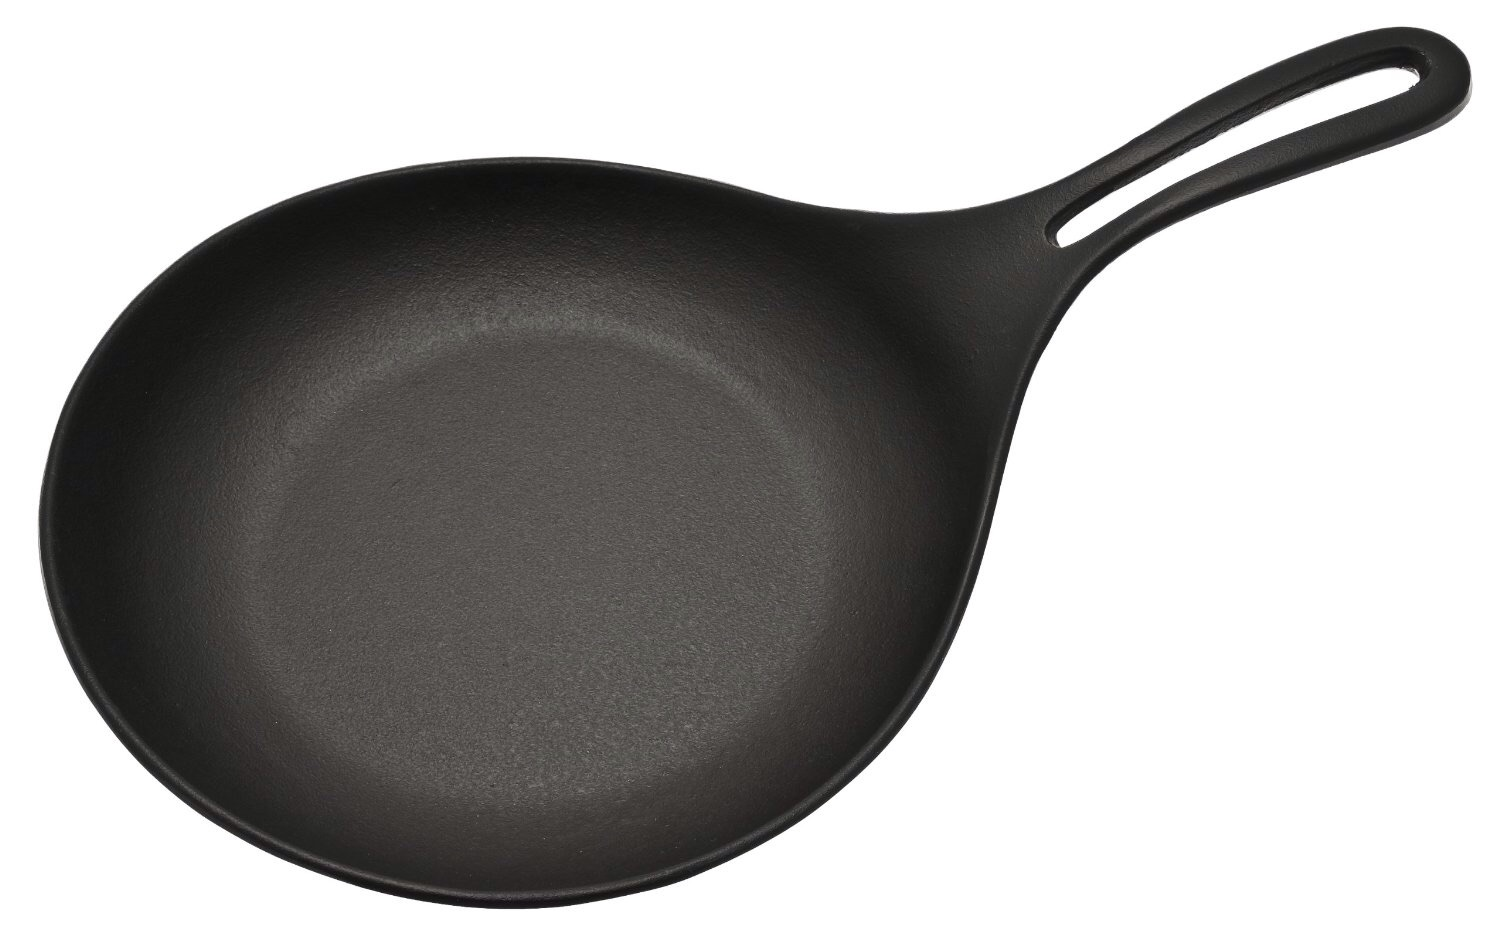 iwachu-cast-iron-omelette-skillet